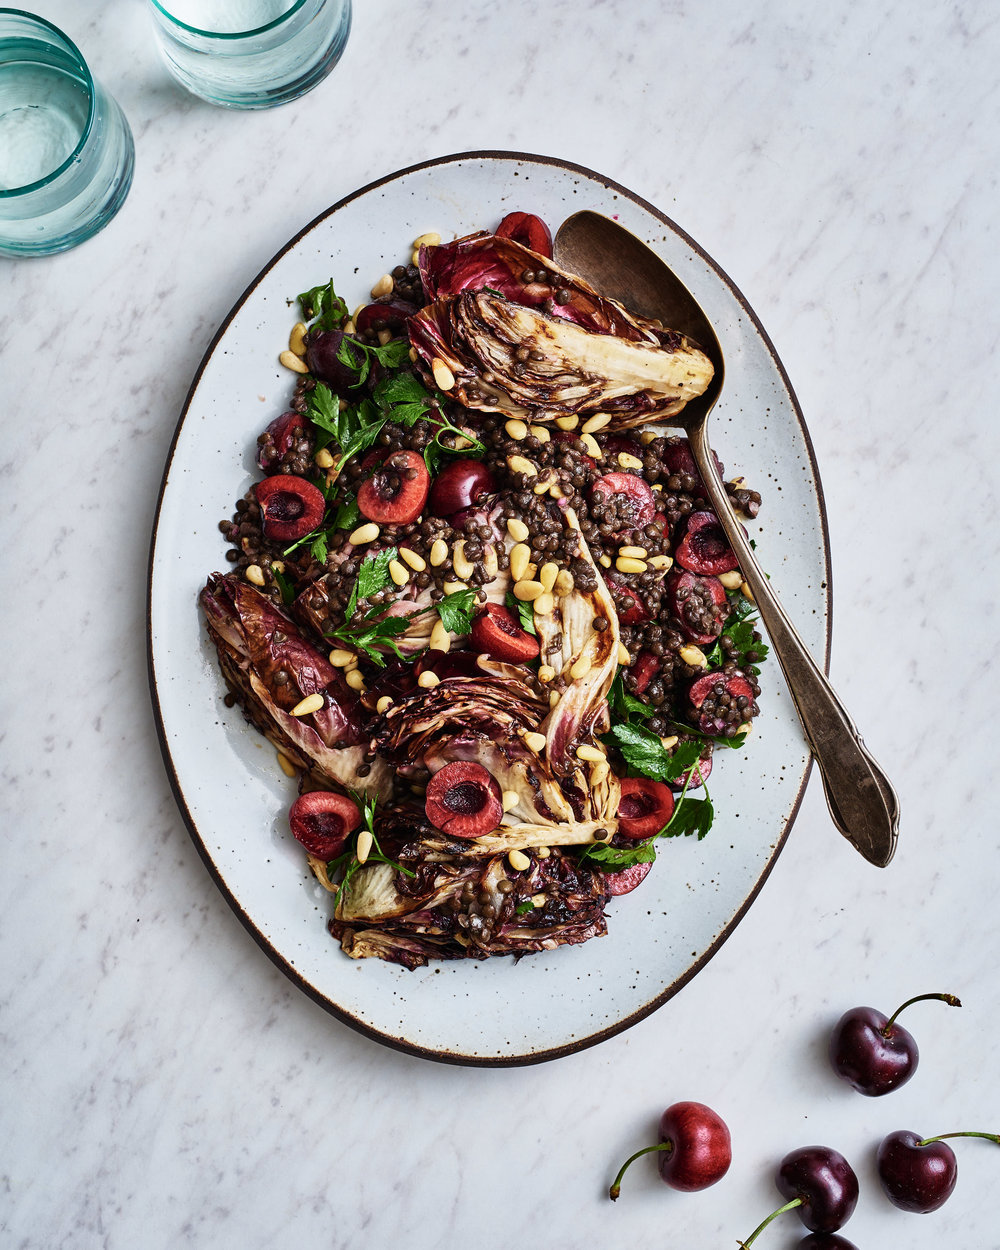 Grilled Radicchio with Lentils, Cherries + Pine Nuts